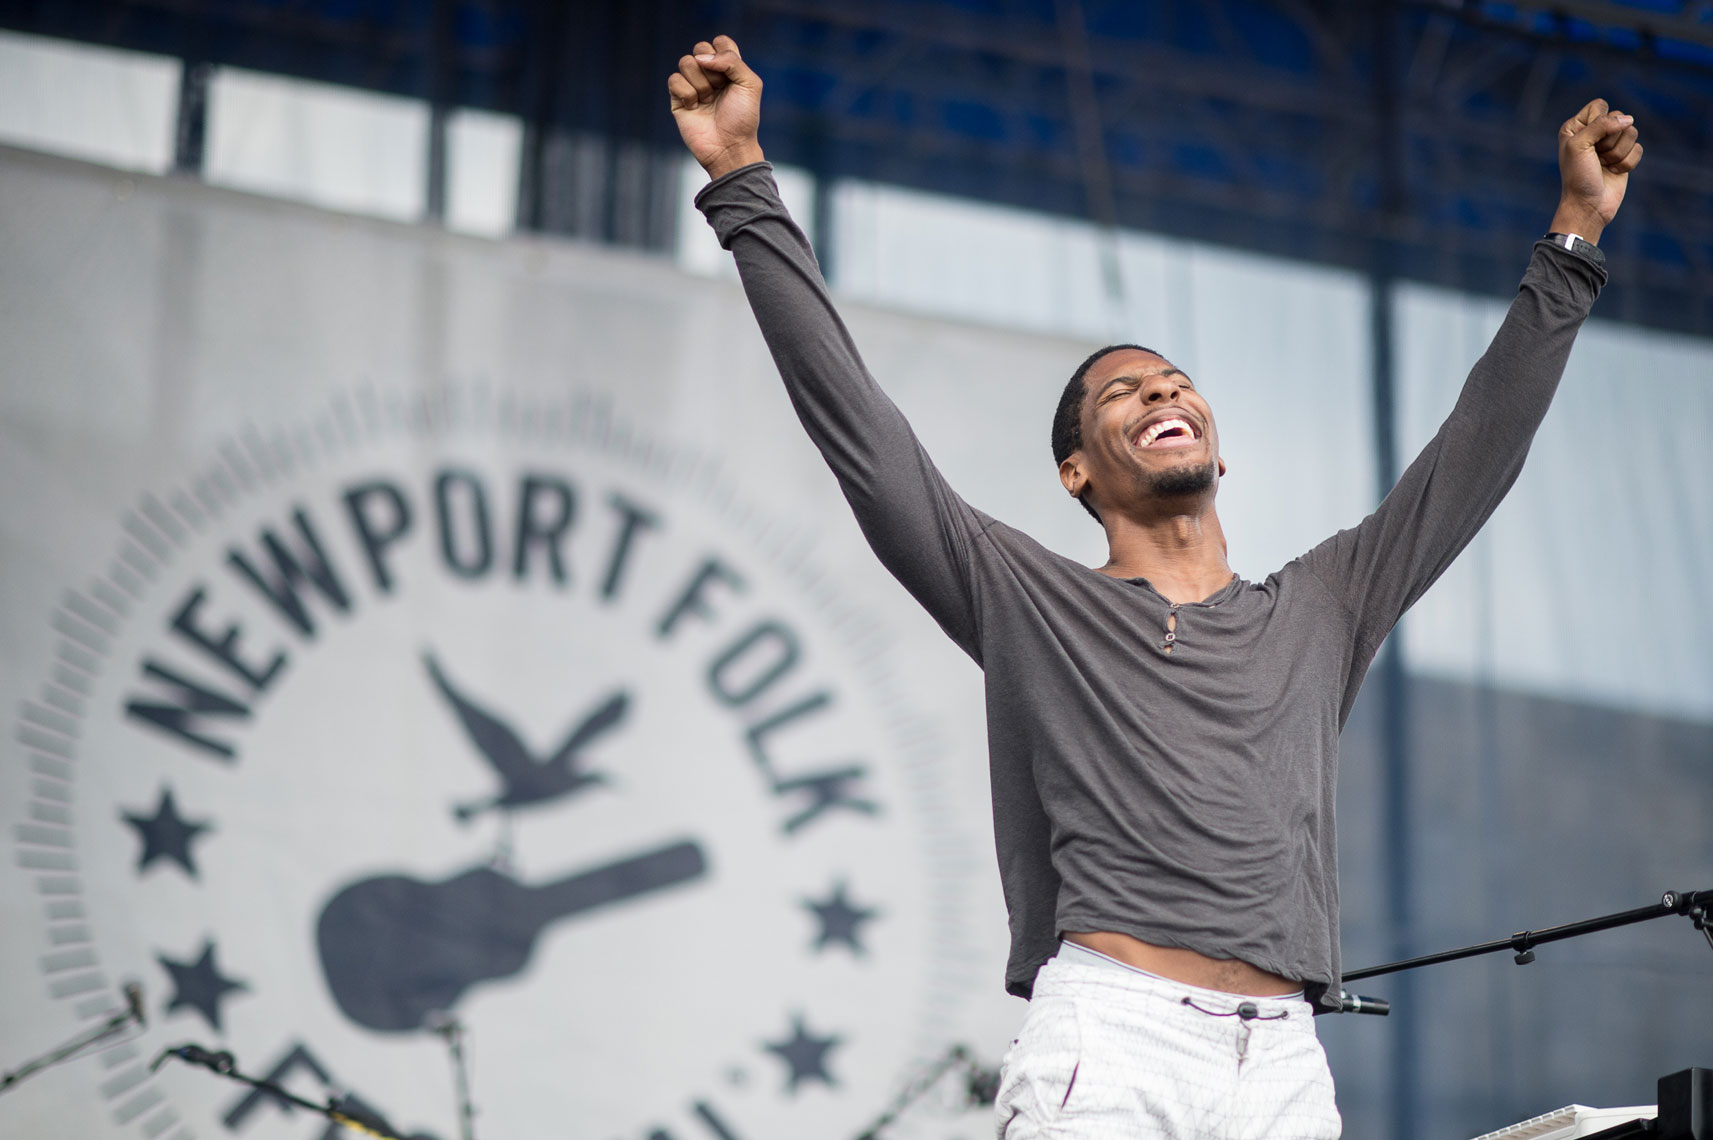 Jon Batiste and Stay Human at Newport Folk Festival